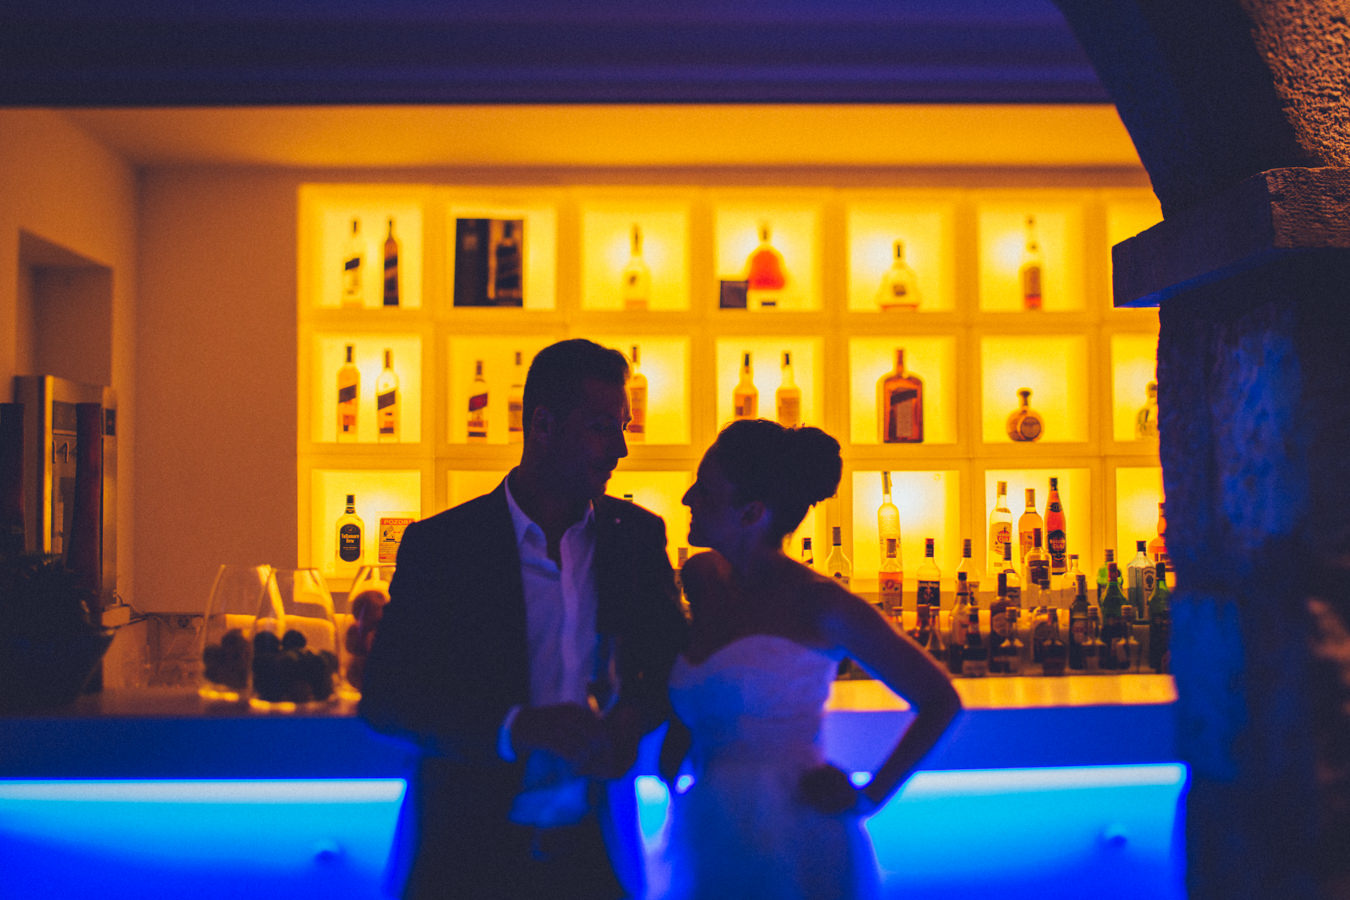 Image /var/www/vhosts/lvps92-60-120-255.vps.webfusion.co.uk/weddingphotographyselect/international/log-in/profiles/server/php/files/4033/WPS 10.jpg By Matija + Marina Weddings